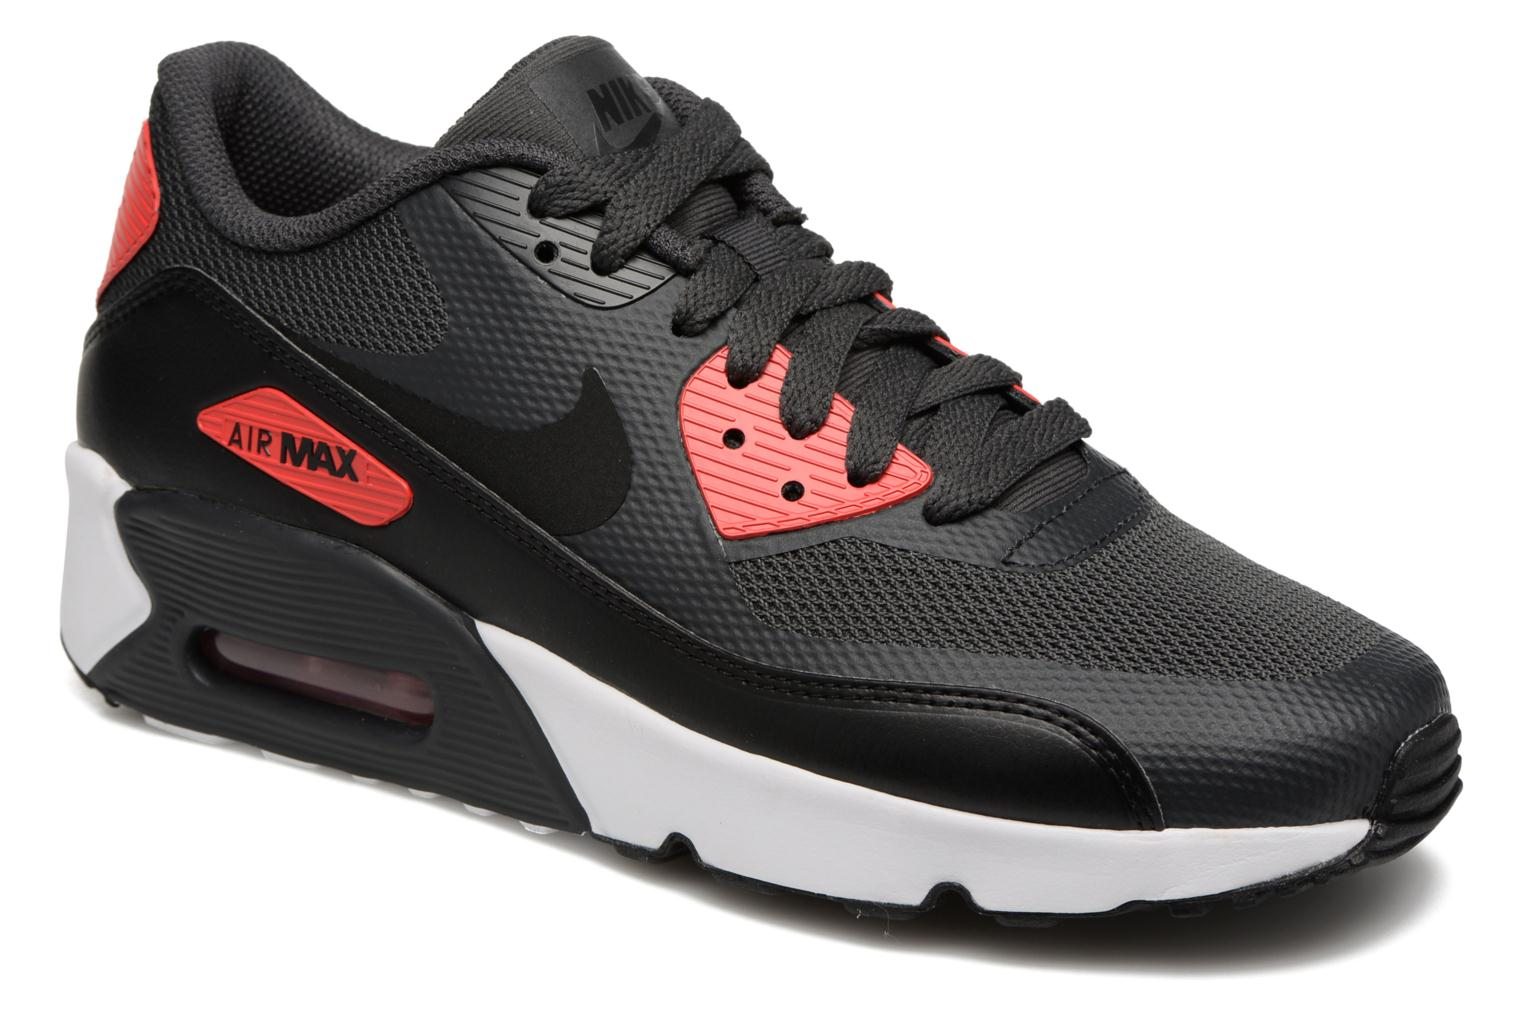 Air Max 90 Ultra 2.0 (Gs) Anthracite/Black-University Red-White